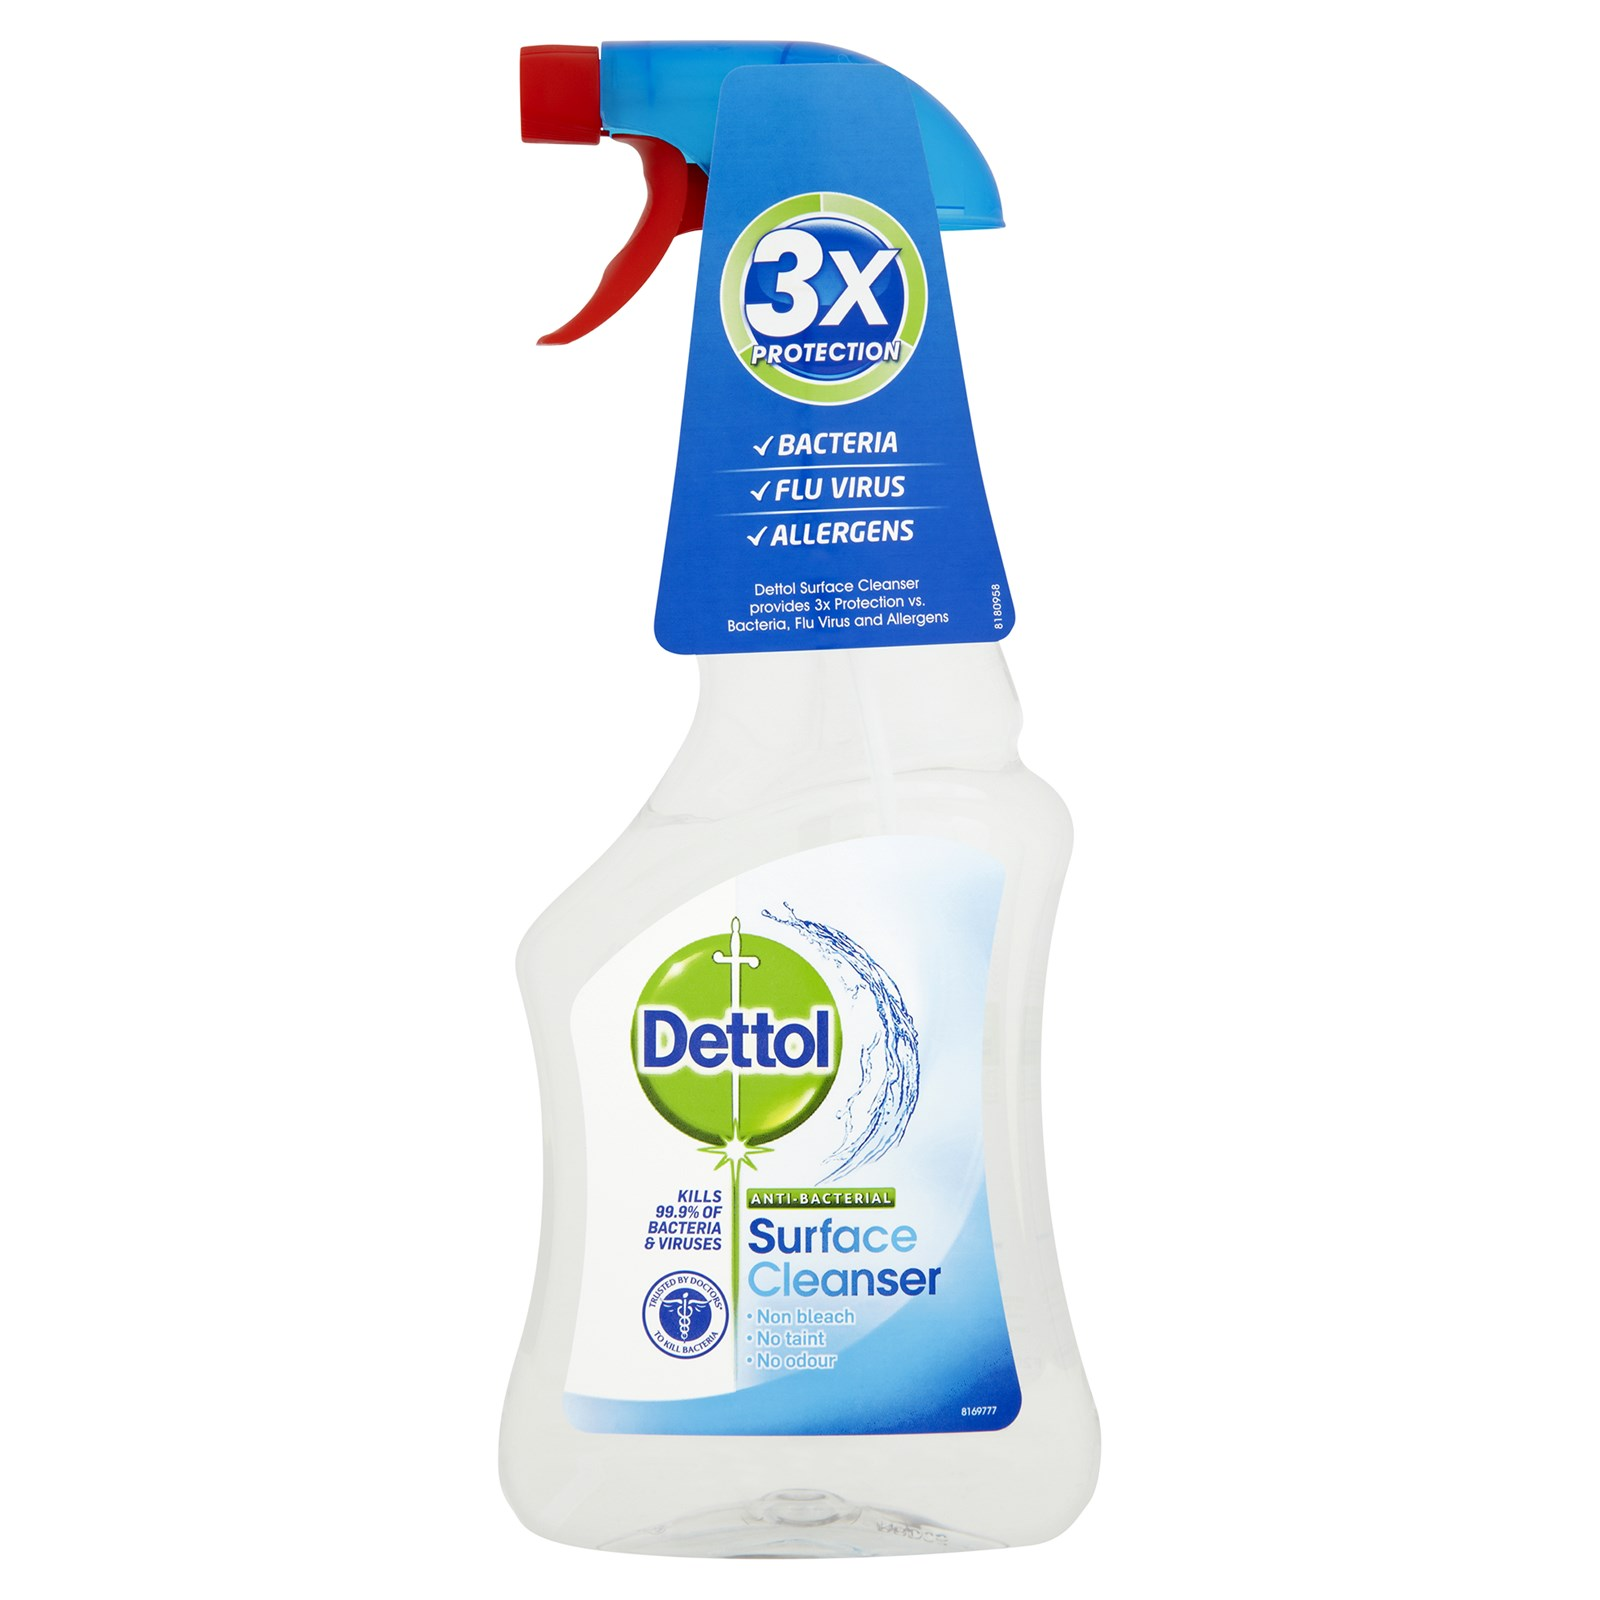 Dettol Anti Bac Surface Cleaner 500ml